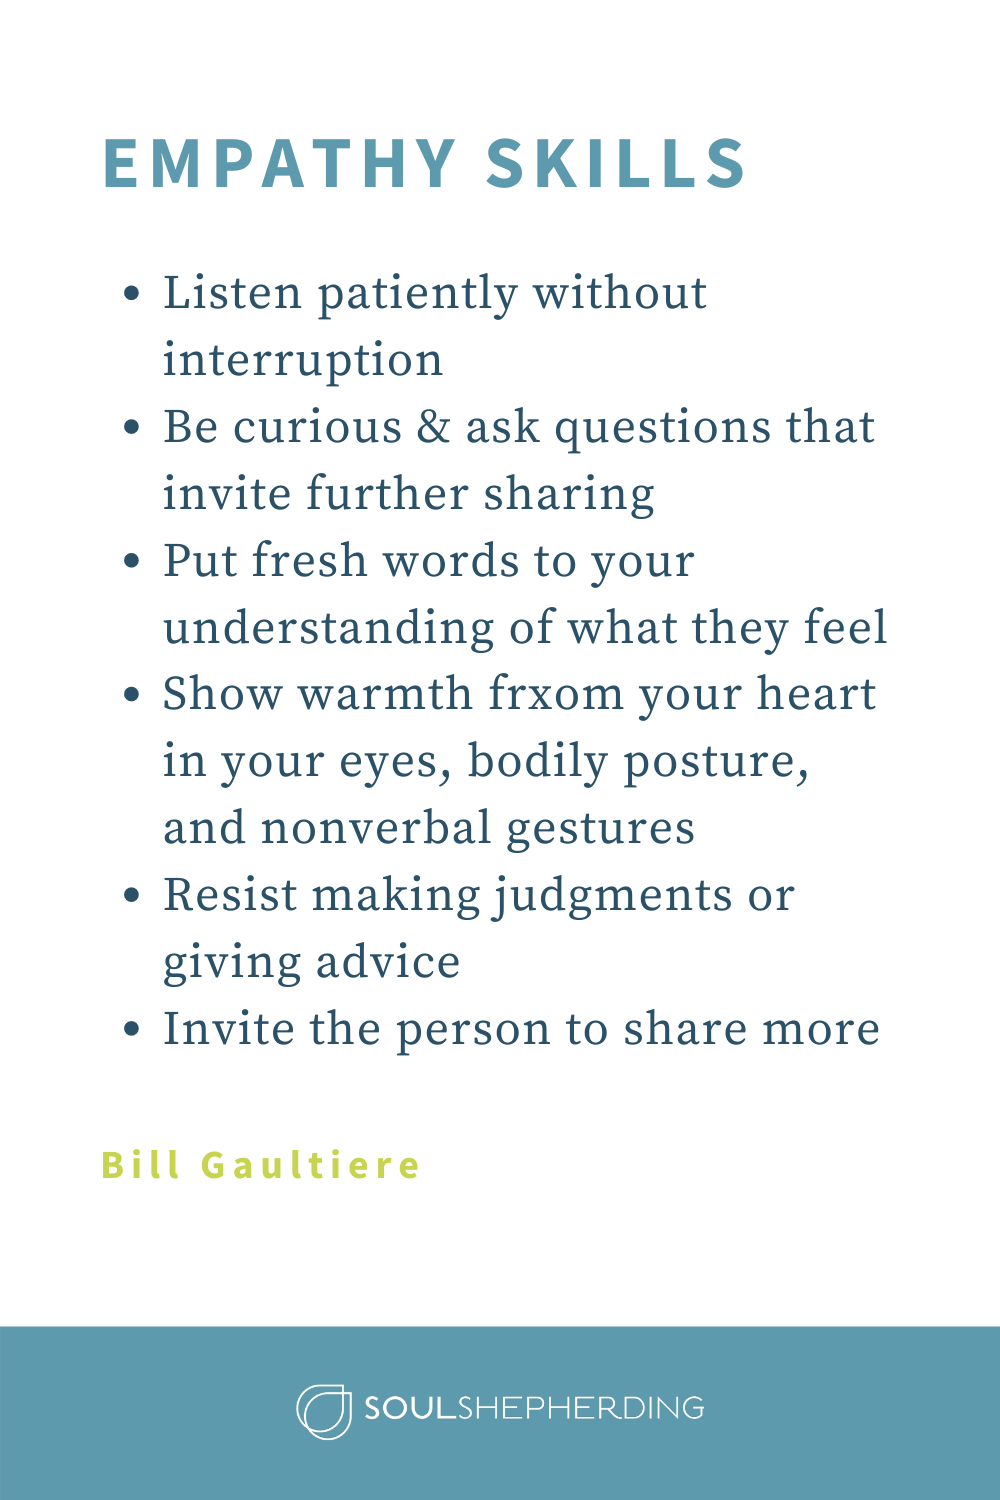 How to Practice + Grow in Your Empathy Skills